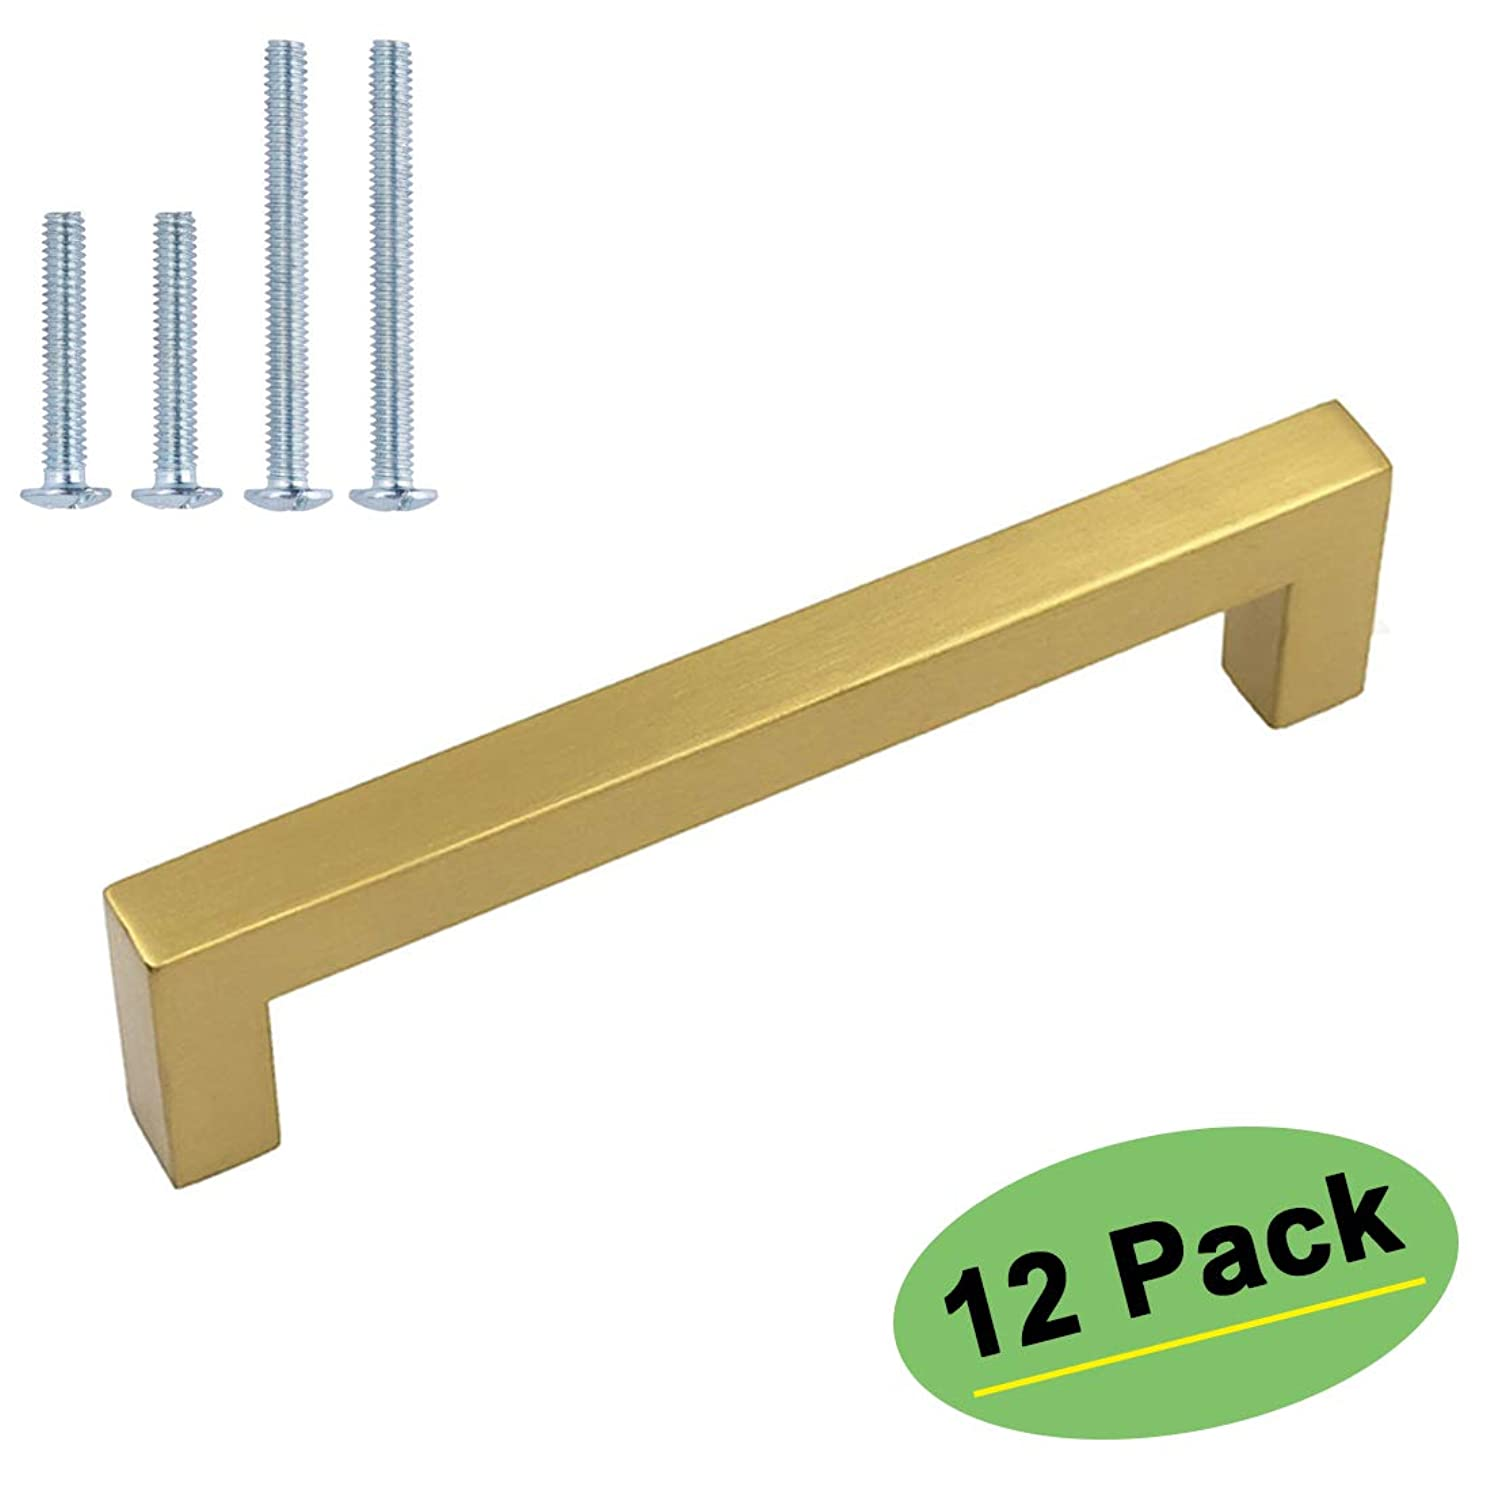 homdiy Gold Drawer Pulls Cabinet Door Handles 12 Pack 4in(102mm) Hole Centers Drawer Handles - HDJ12GD Gold Cabinet Hardware Brushed Brass Cabinet Pulls